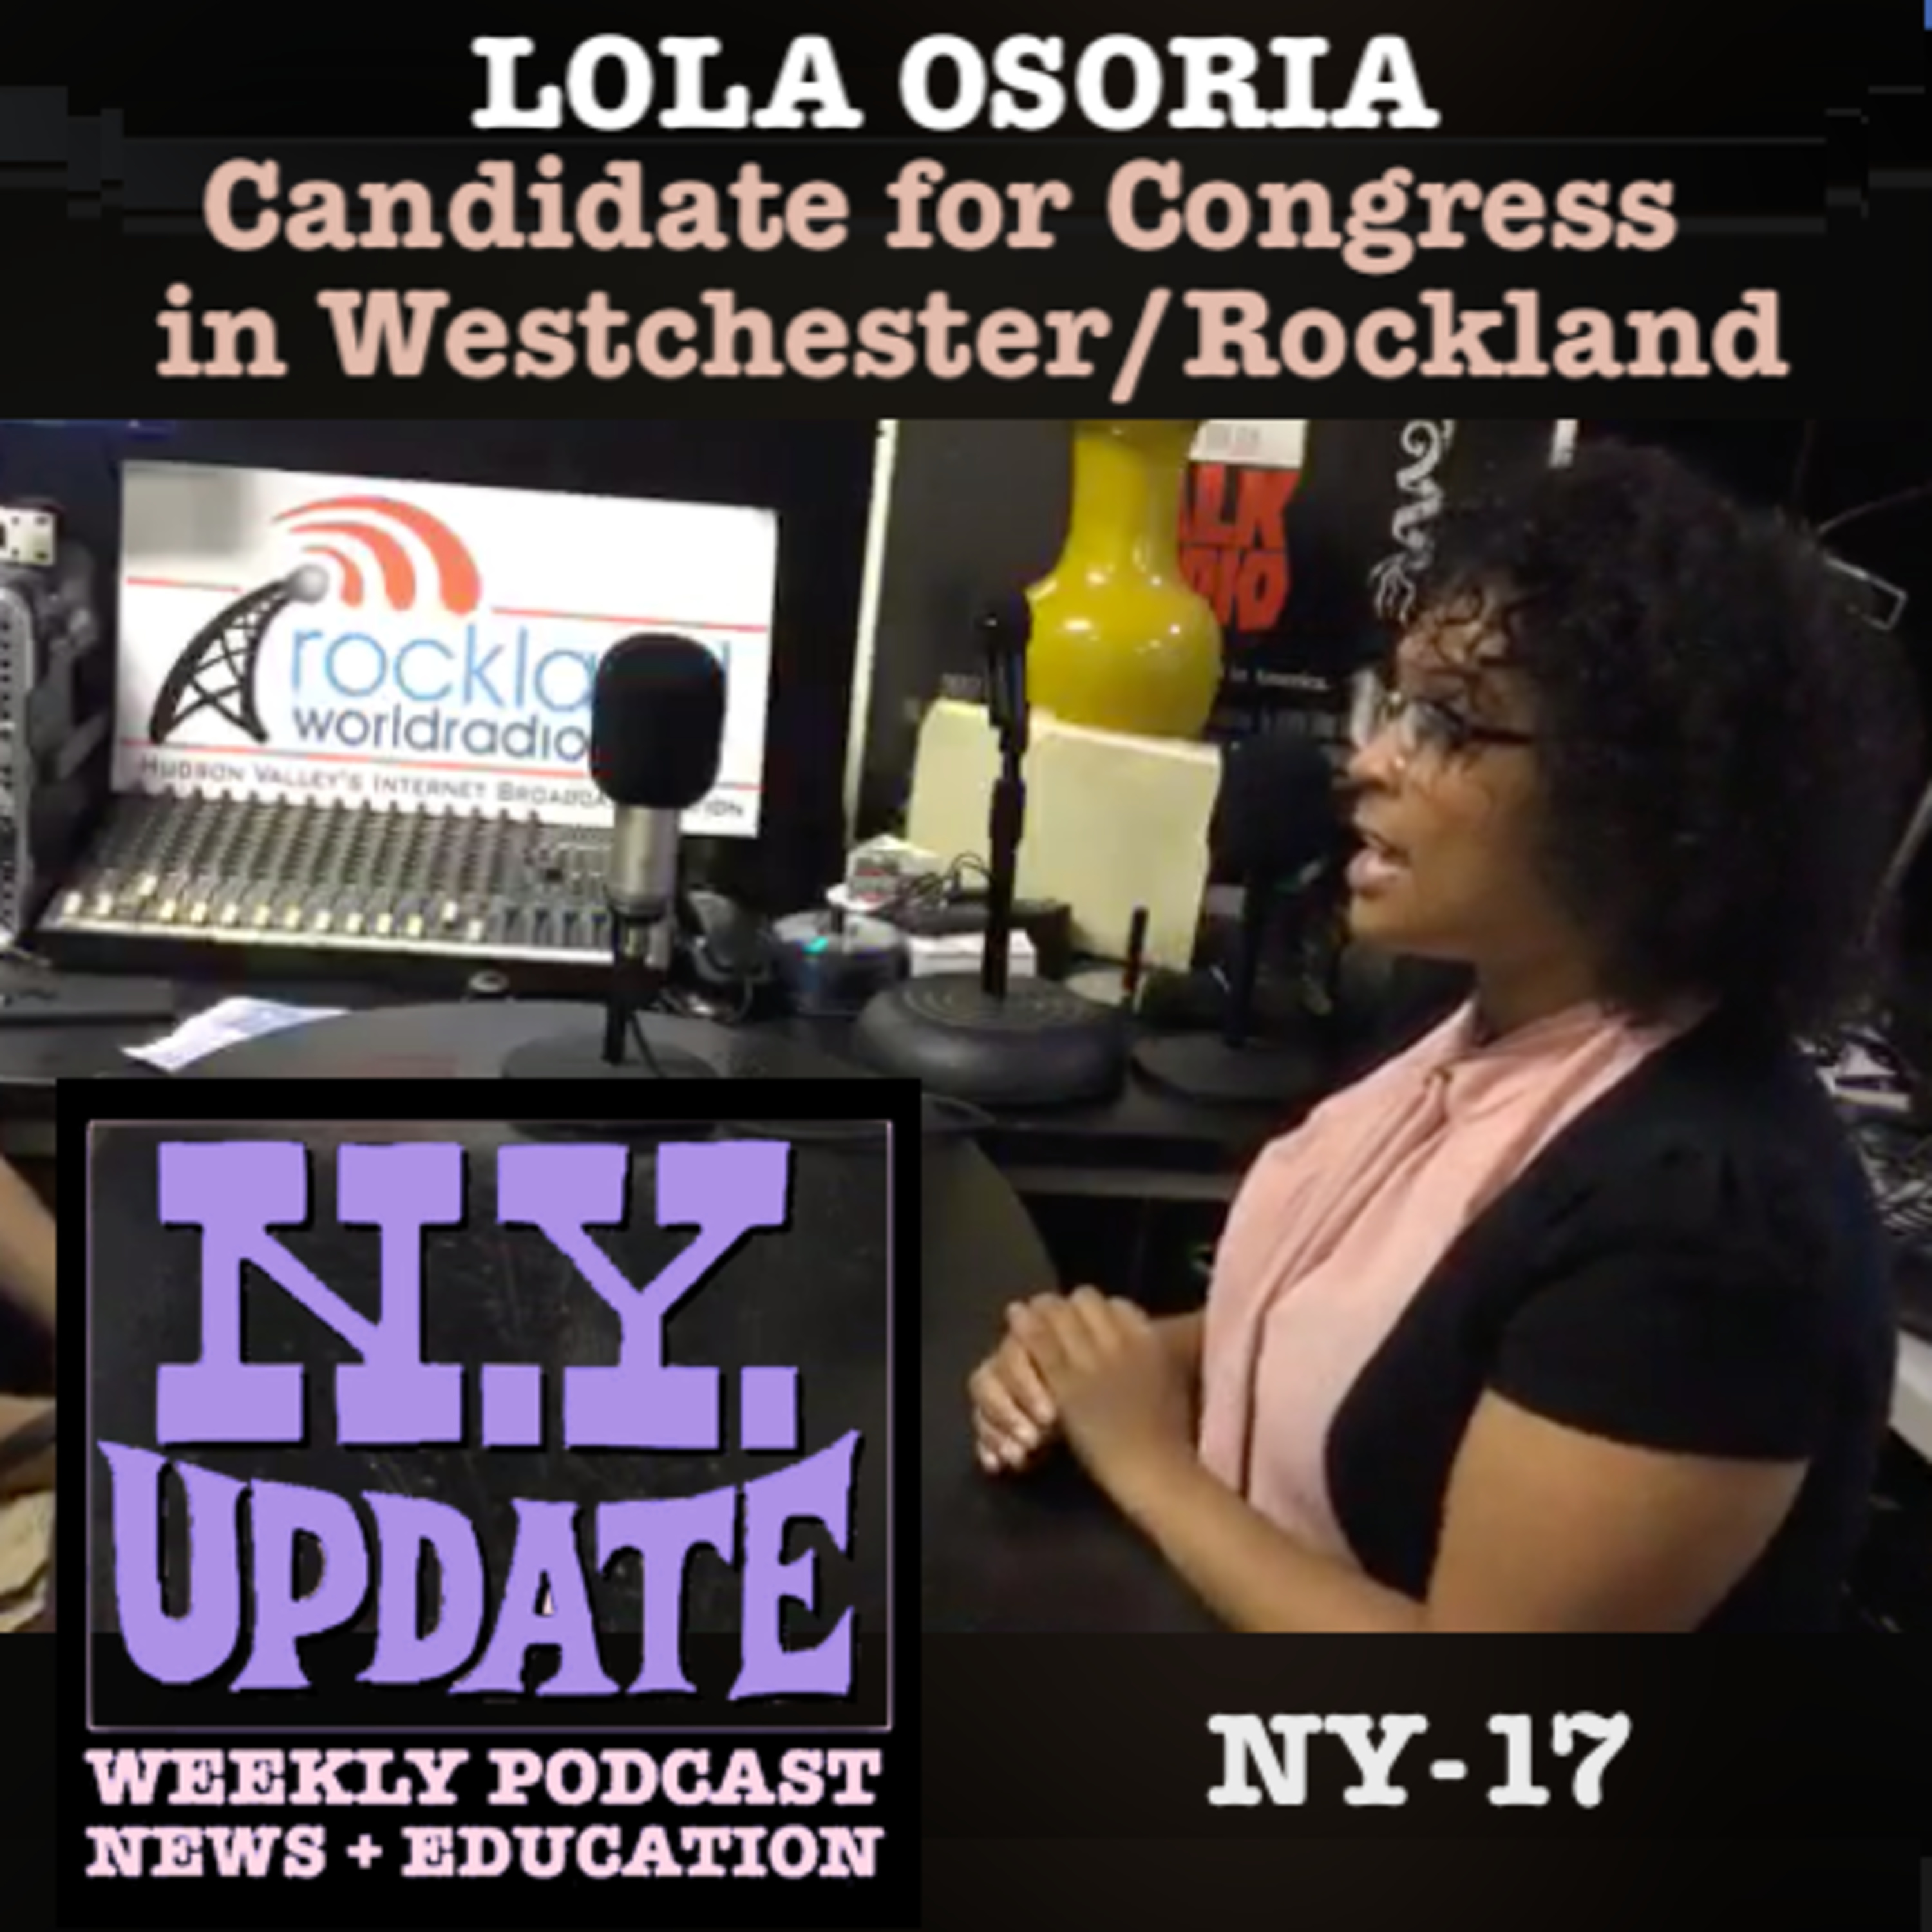 Lola Osoria, Candidate for Congress in NY-17. Aired 6-28-19